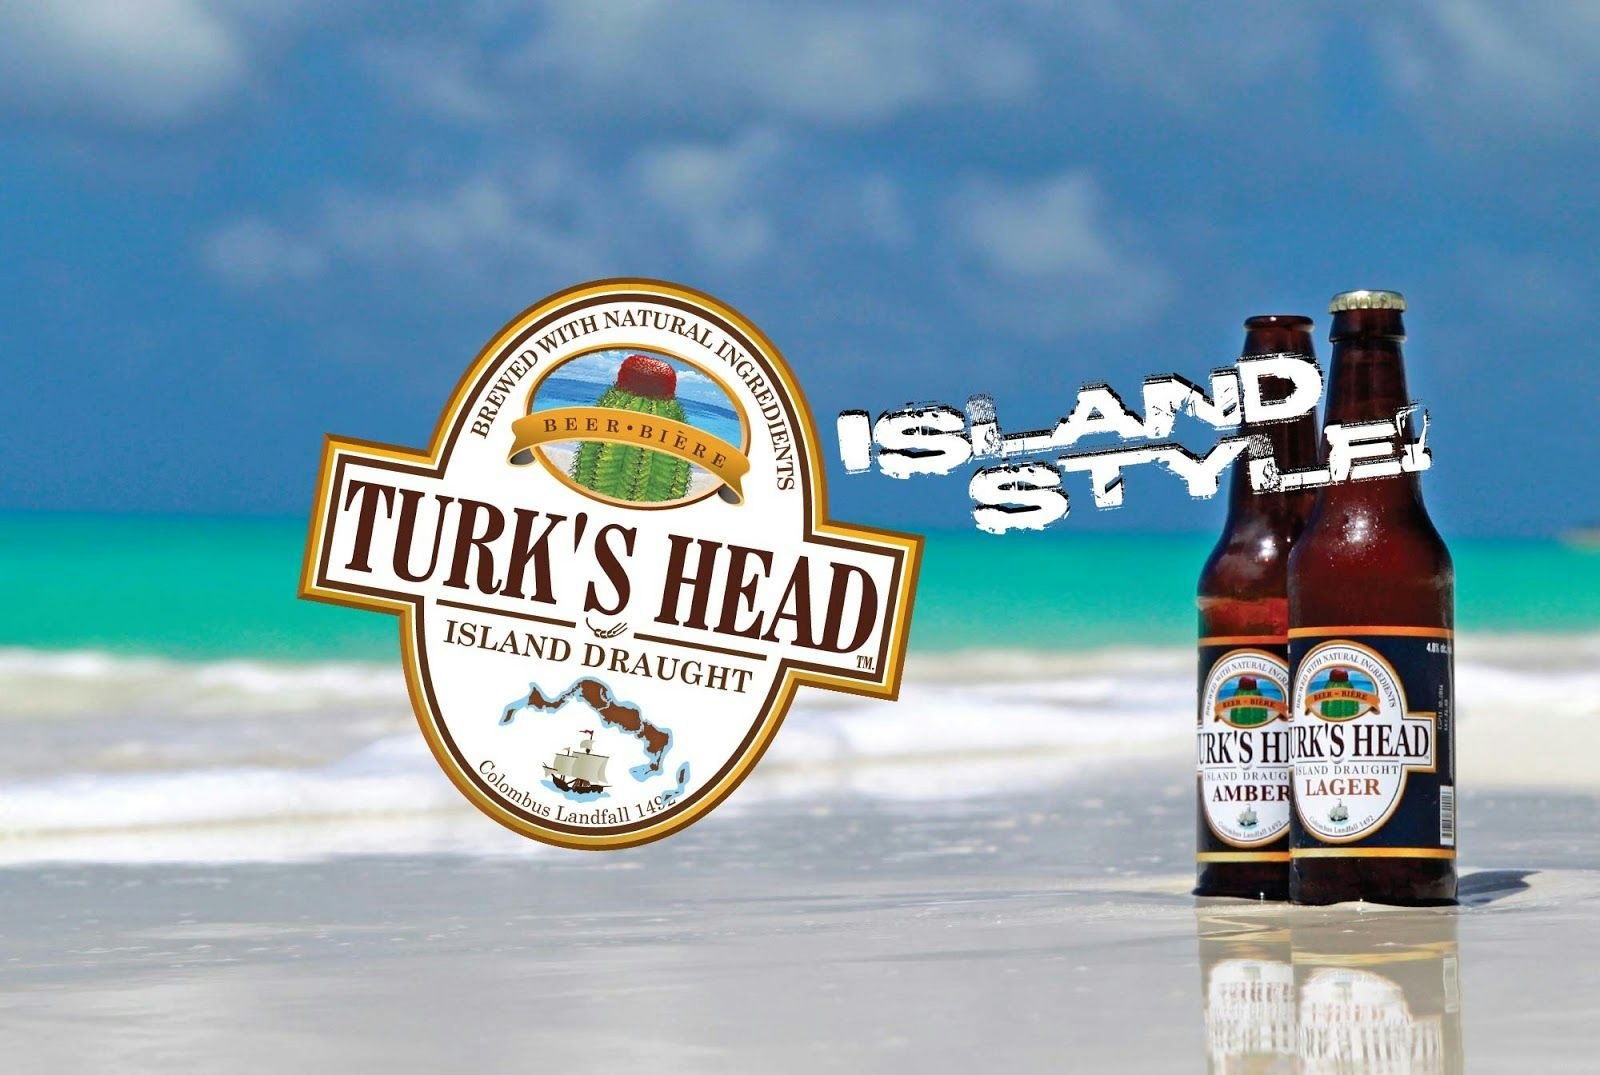 Beat The Heat With A Turk's Head Beer